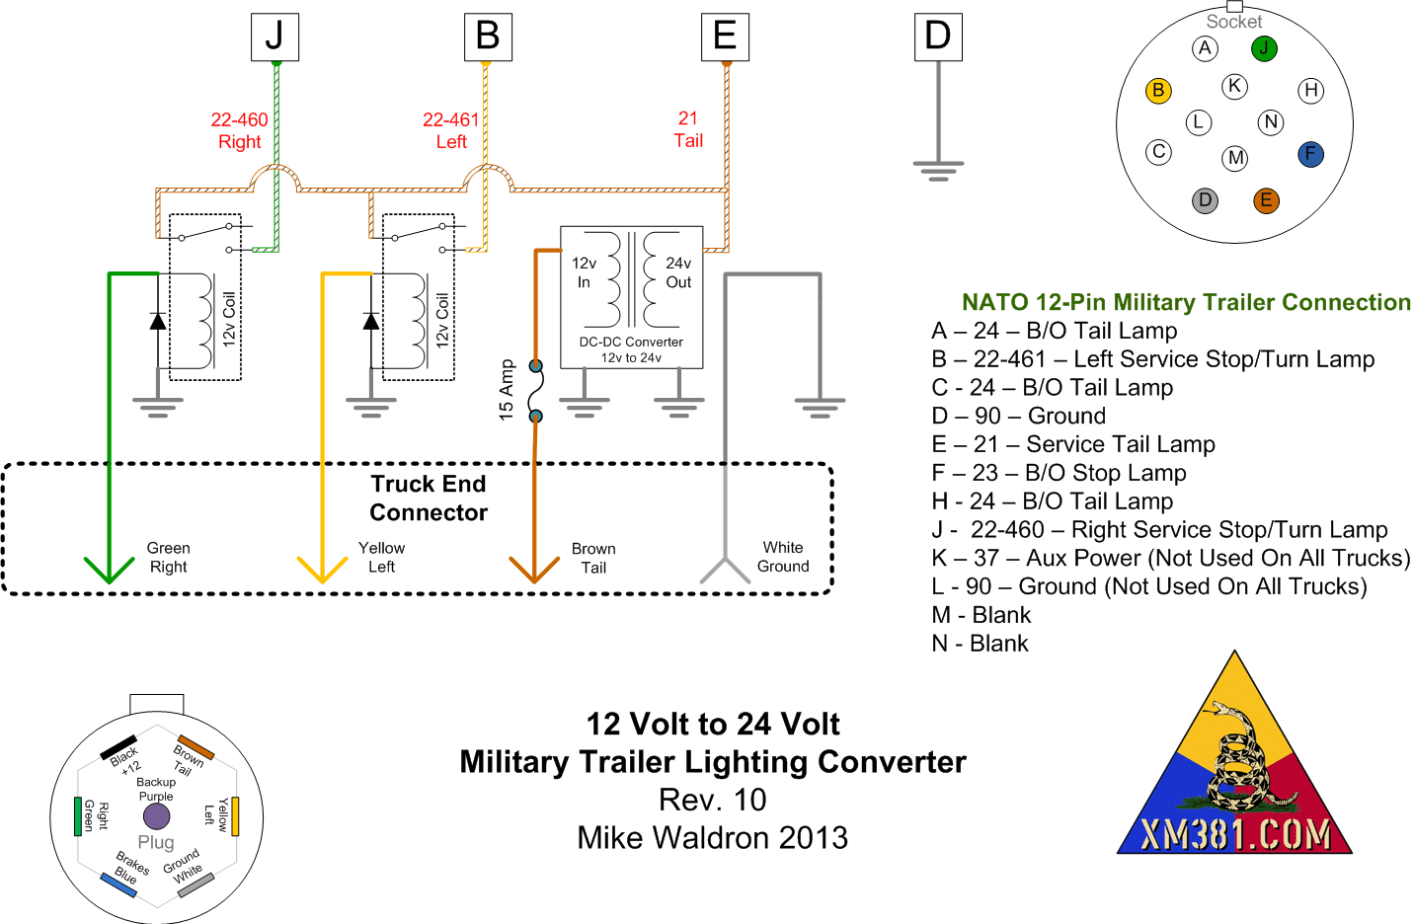 wiring diagram for jayco caravans wiring image 12 pin caravan plug wiring diagram wiring diagram on wiring diagram for jayco caravans